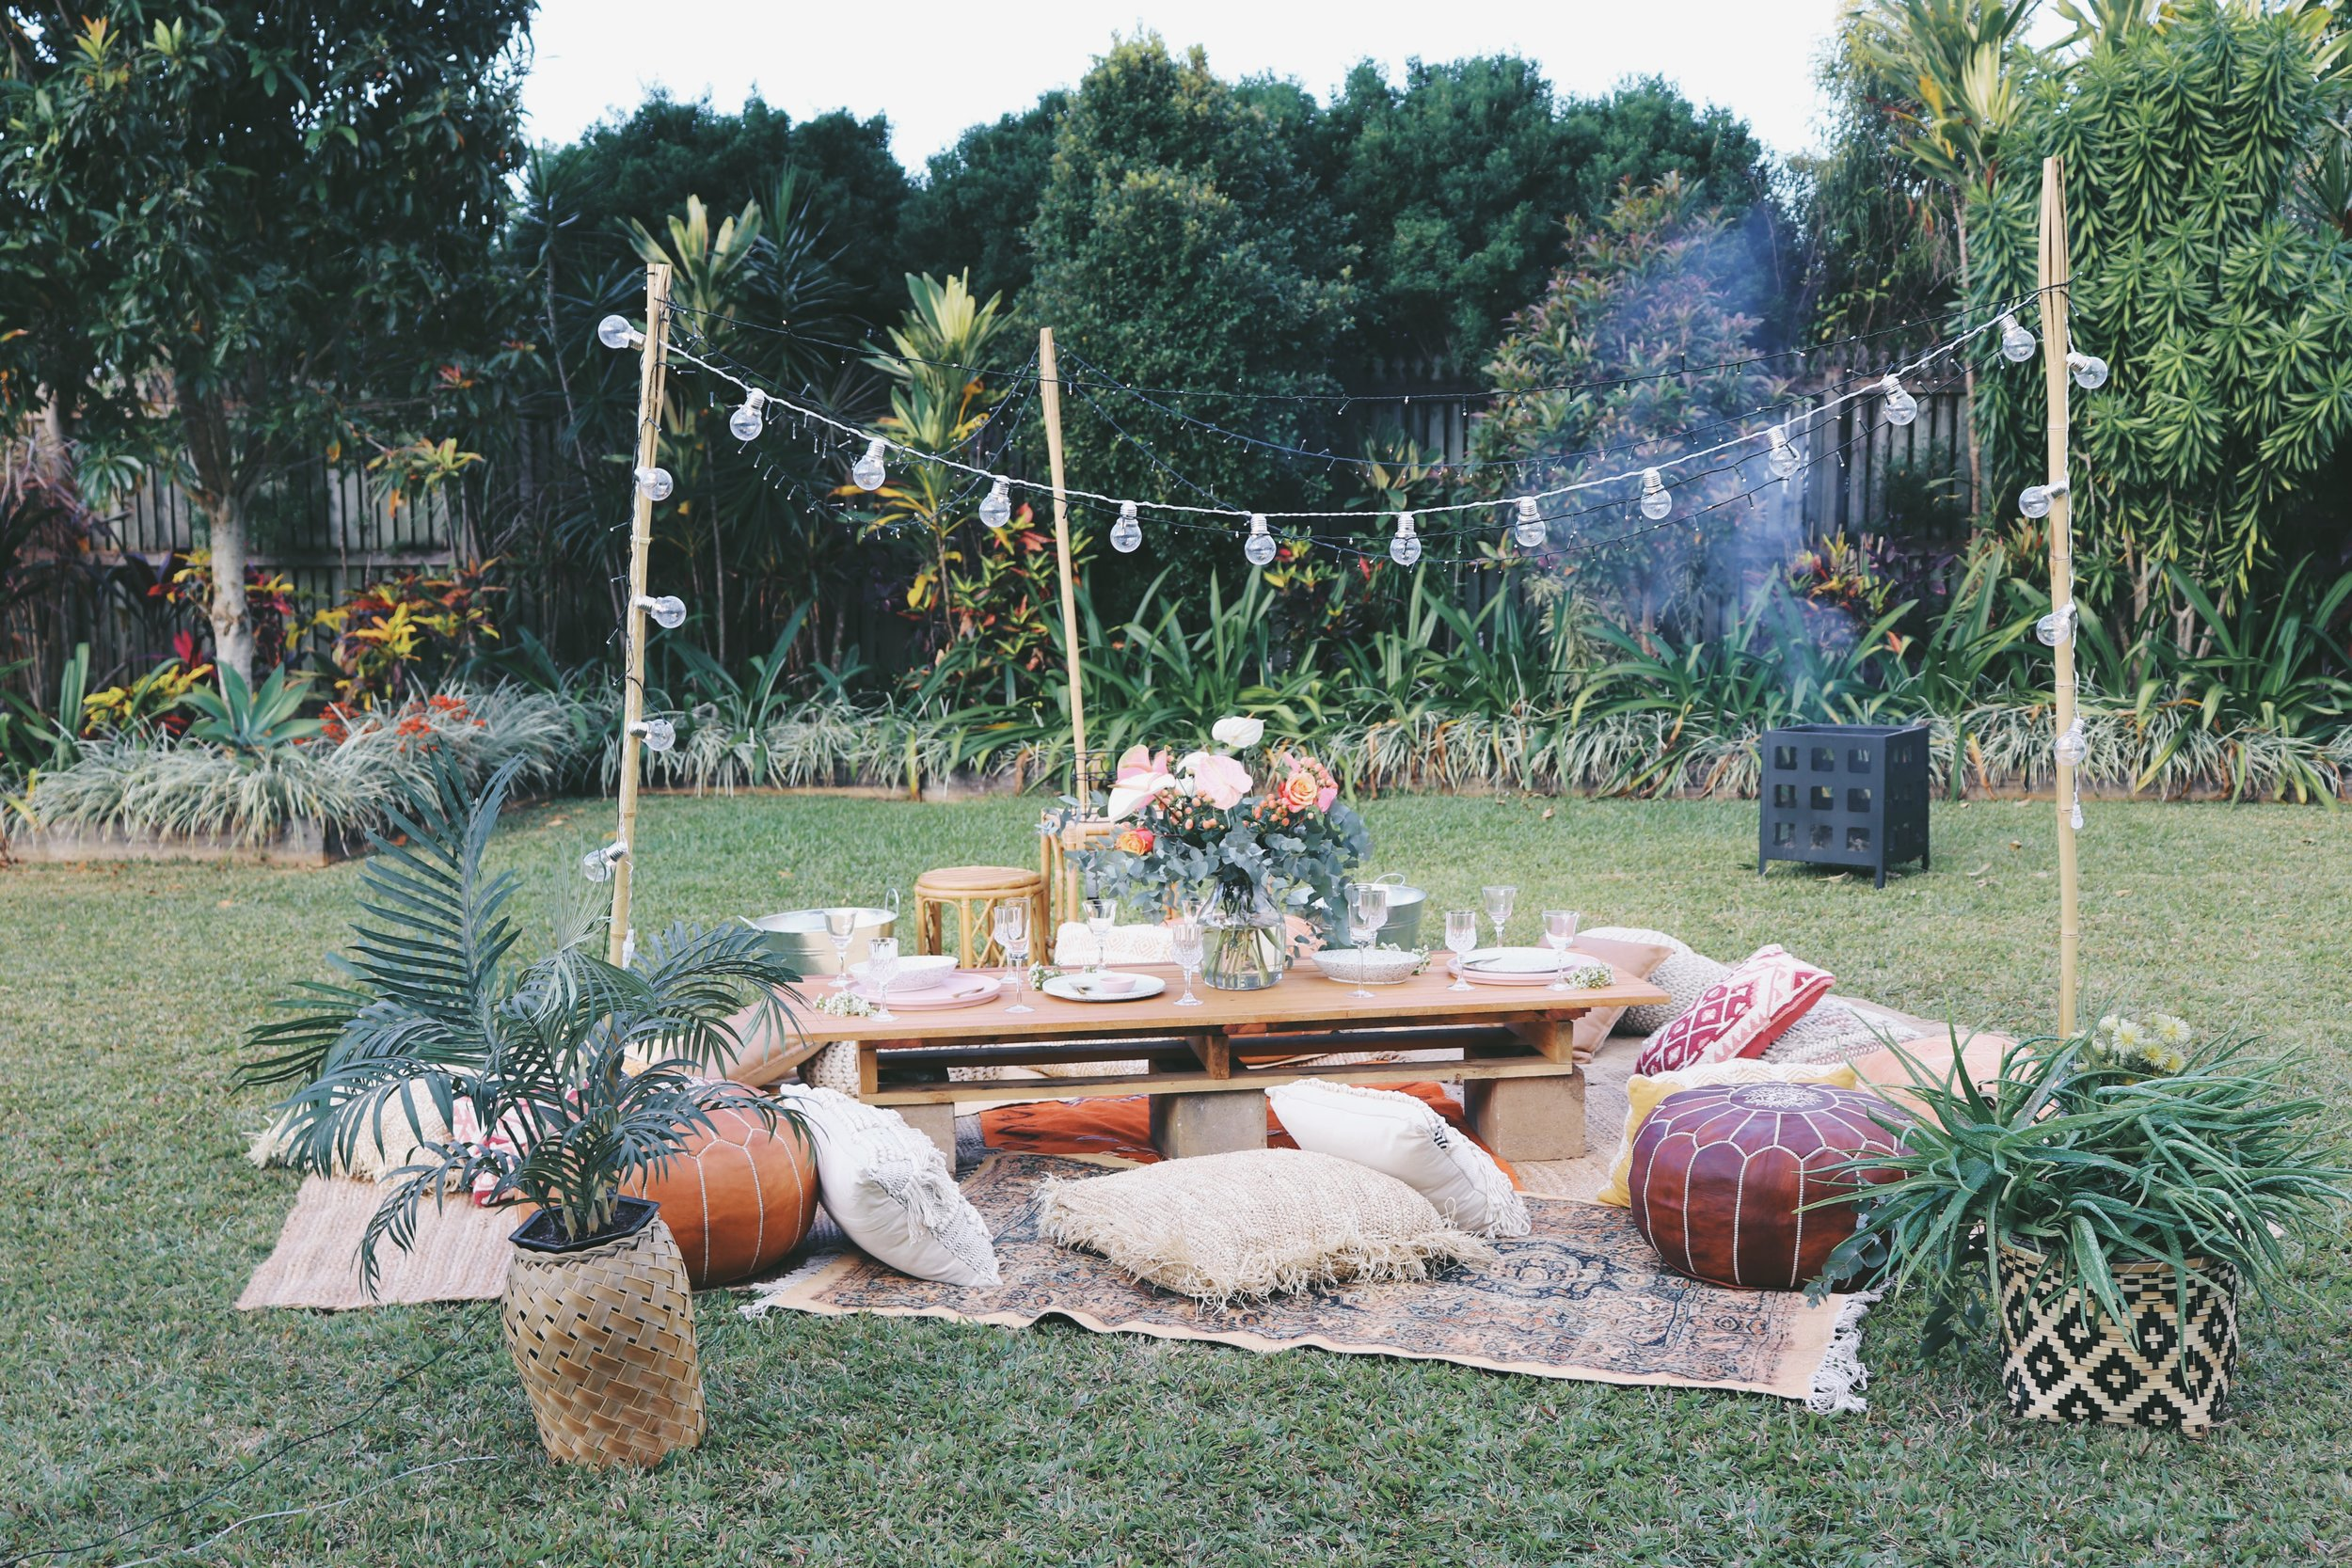 pop_up_picnic_cairns_event_hire_weddingplanner_stylist_cairnseventstyle_picnic_girlsweekend_The Collection Co_design_backyard wedding_cairns event hire.JPG